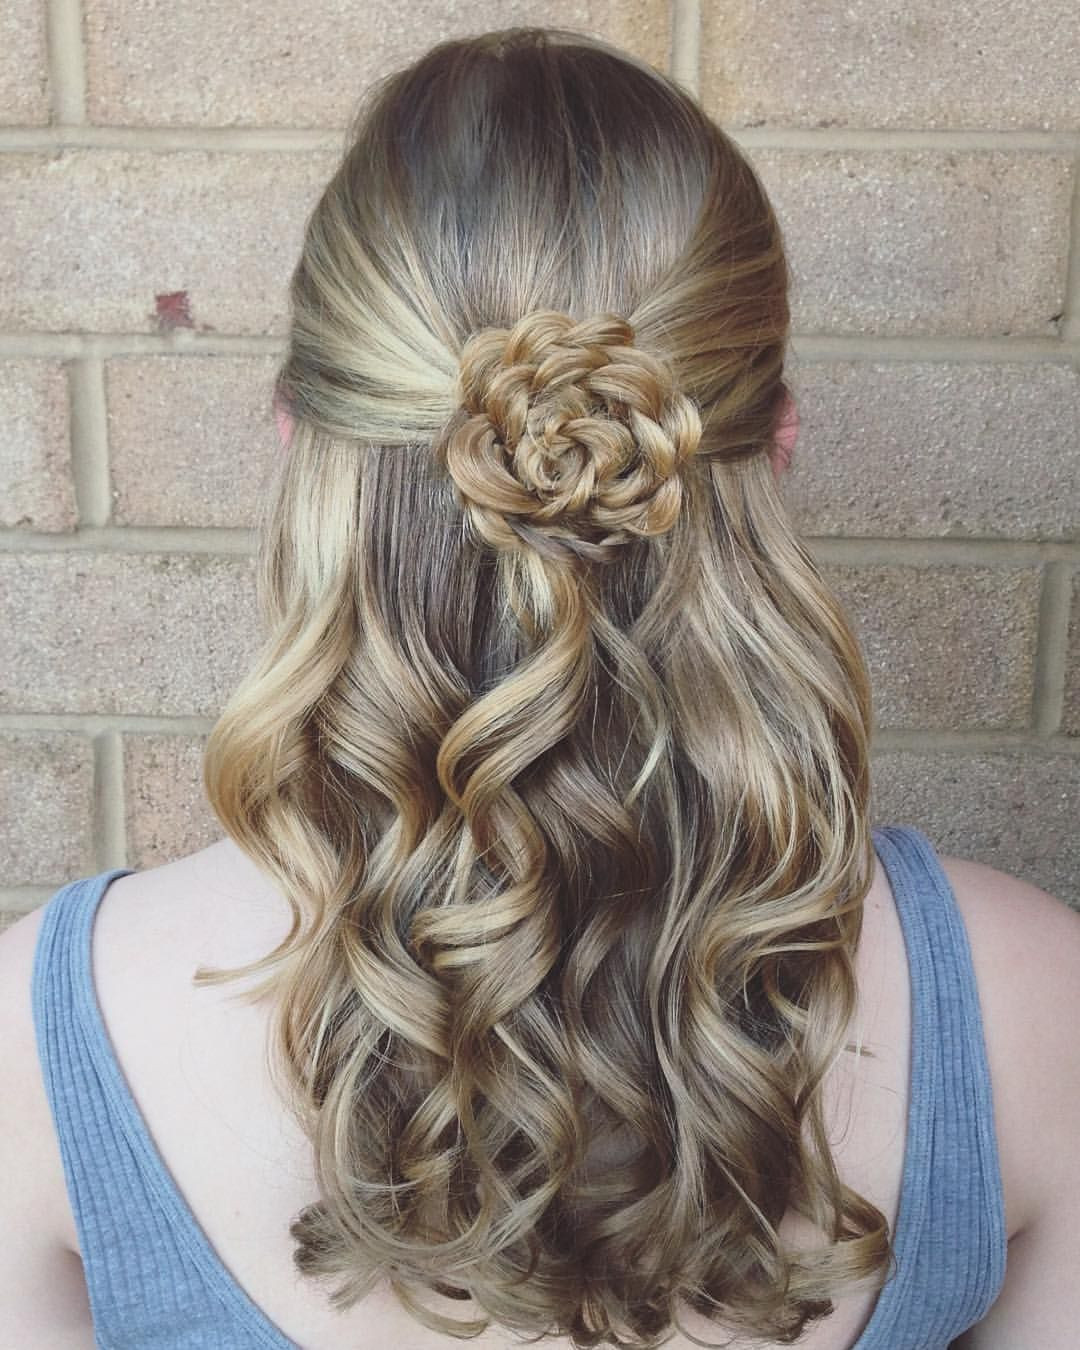 """Best ideas about Roses Hairstyles . Save or Pin Abigail Rose on Instagram """"Those curls a flower braid Now."""